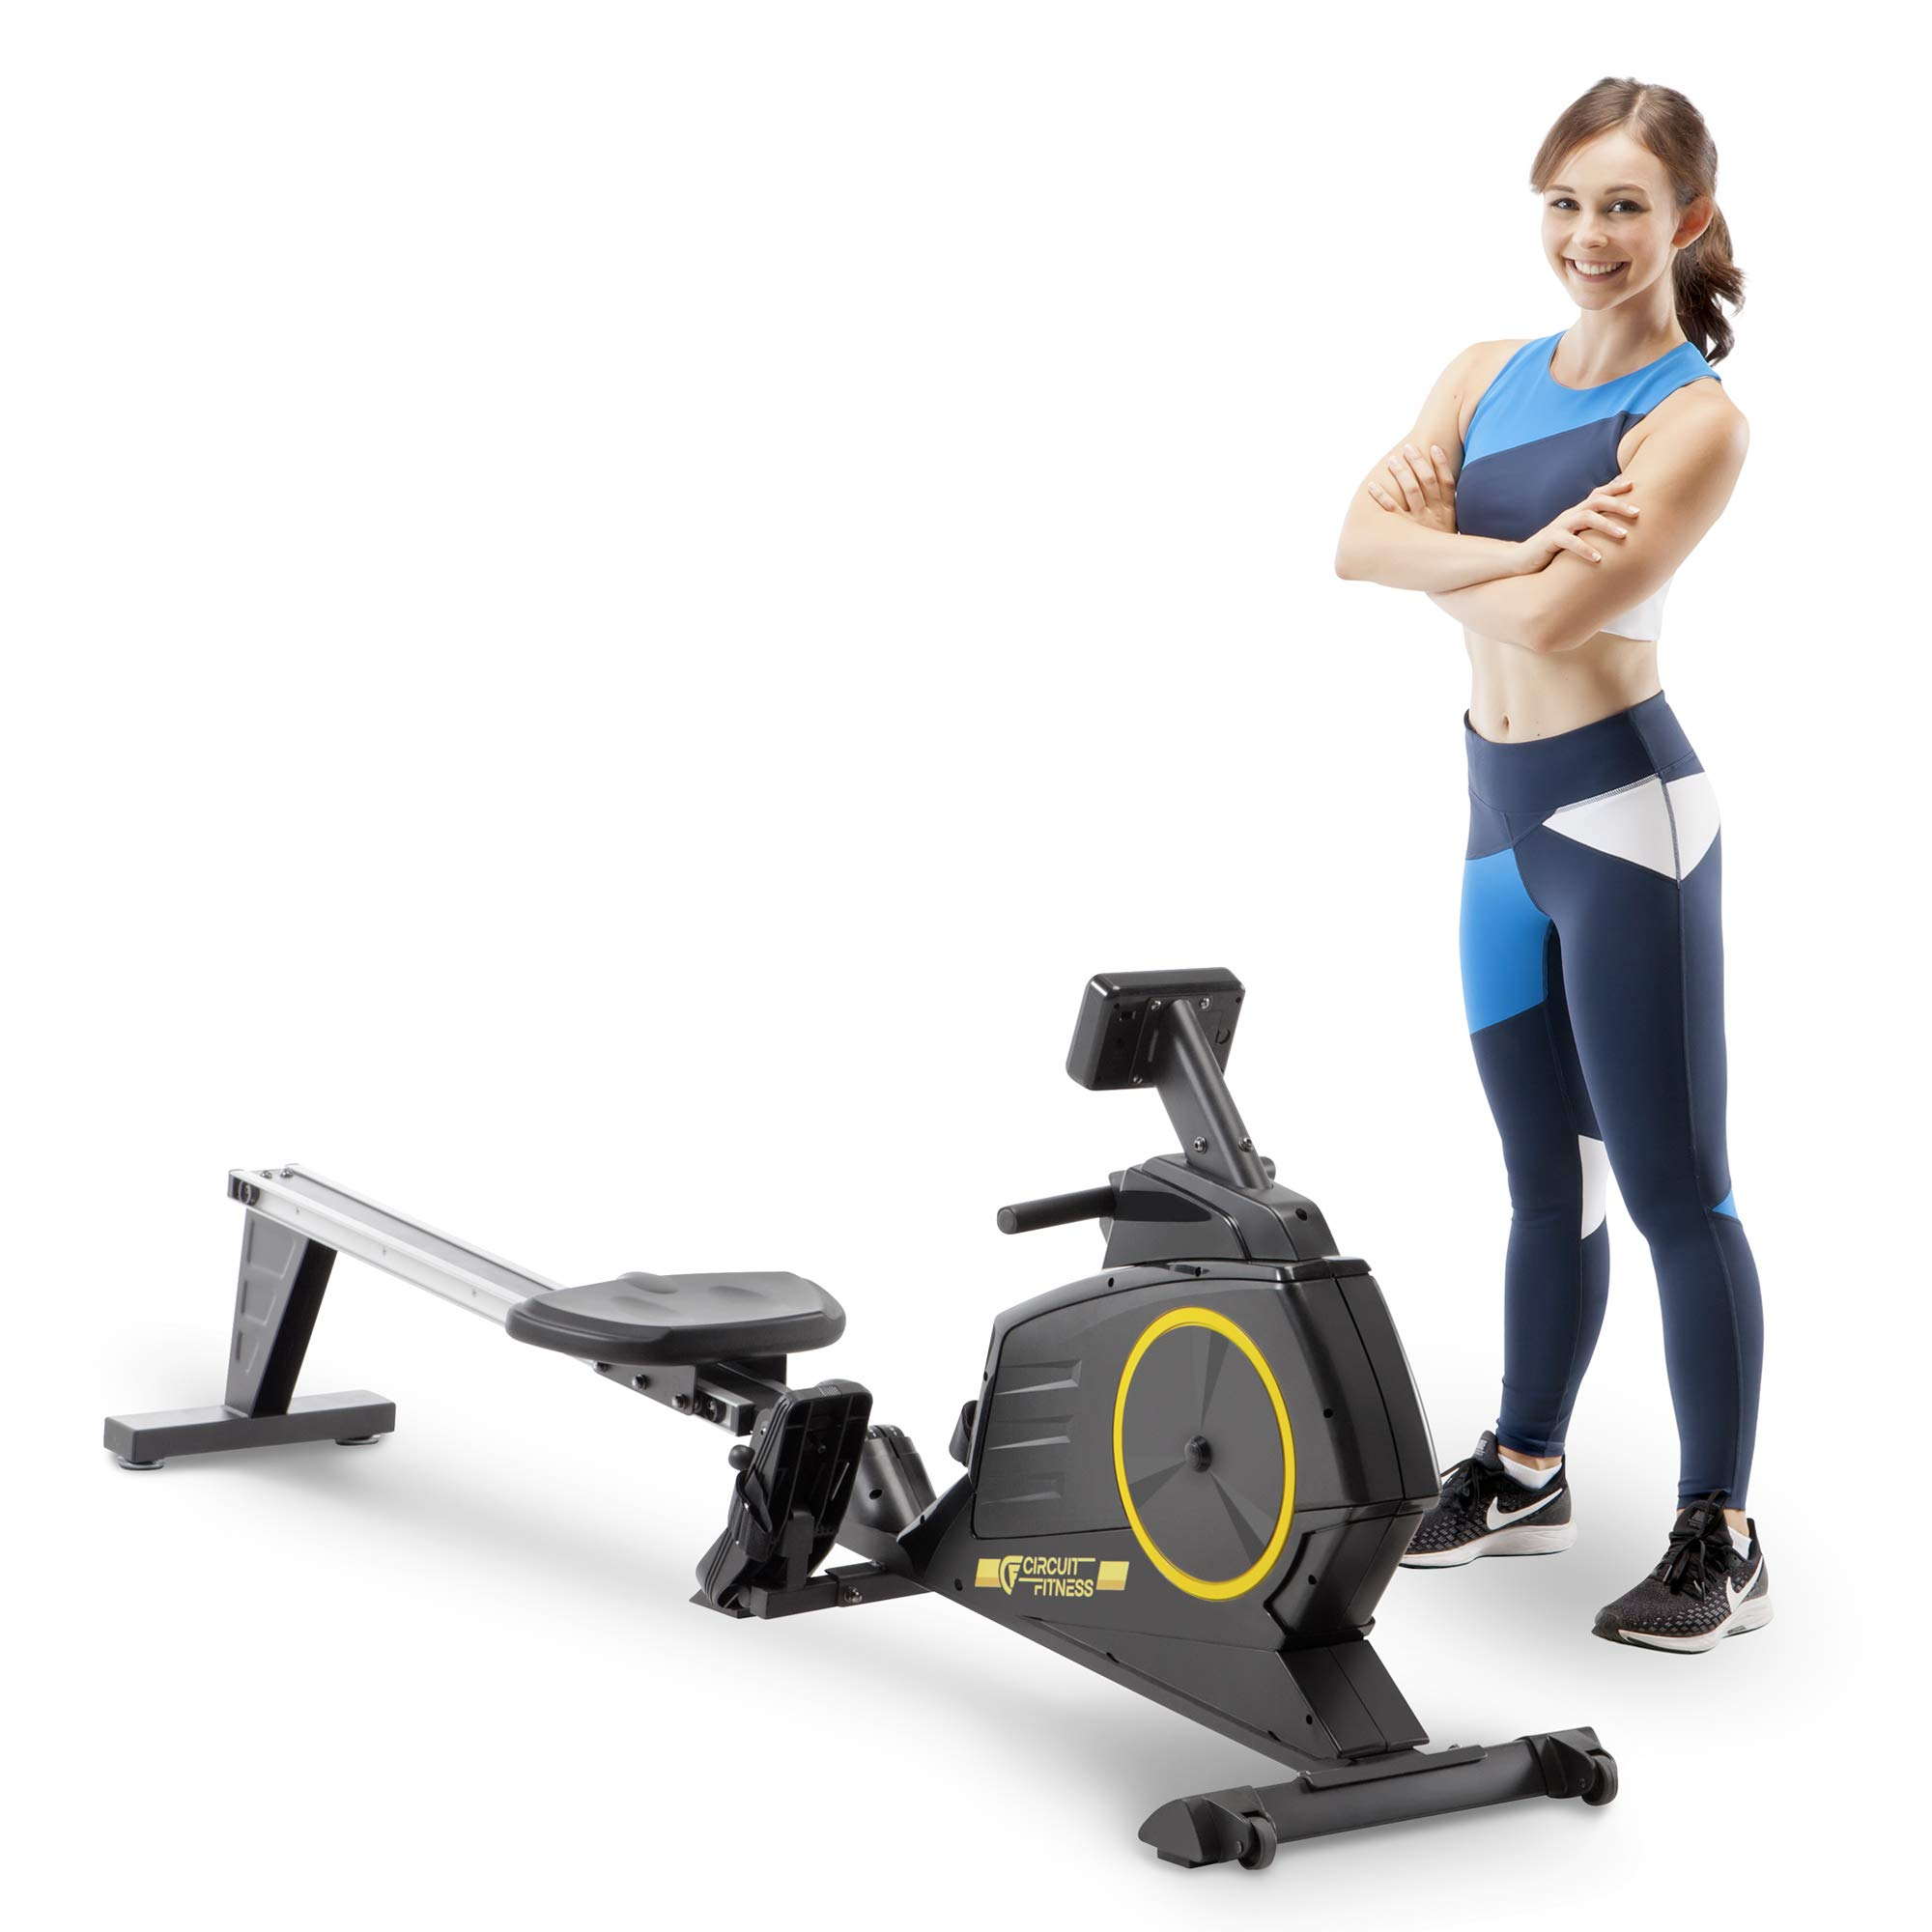 CIRCUIT FITNESS Deluxe Foldable Magnetic Rowing Machine with 8 Resistance Setting & Transport Wheels - Yellow by CIRCUIT FITNESS